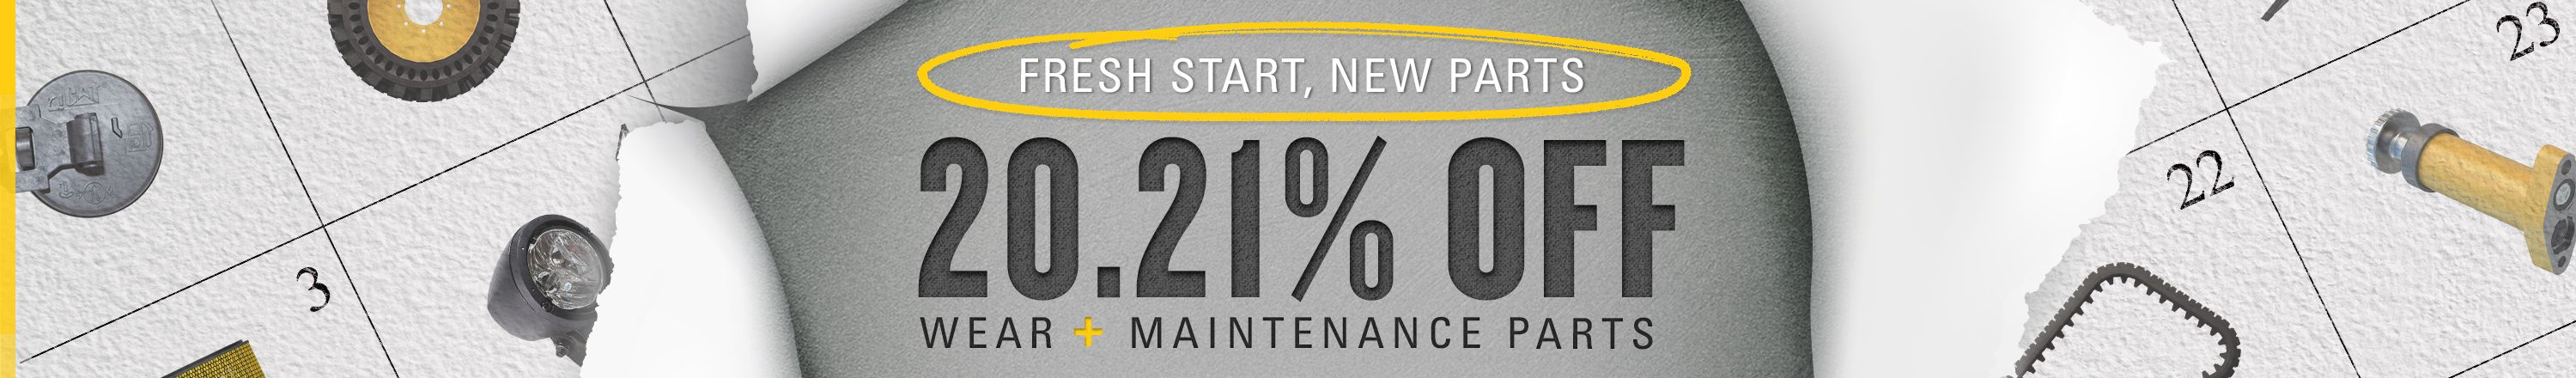 20.21% Off Wear & Maintenance